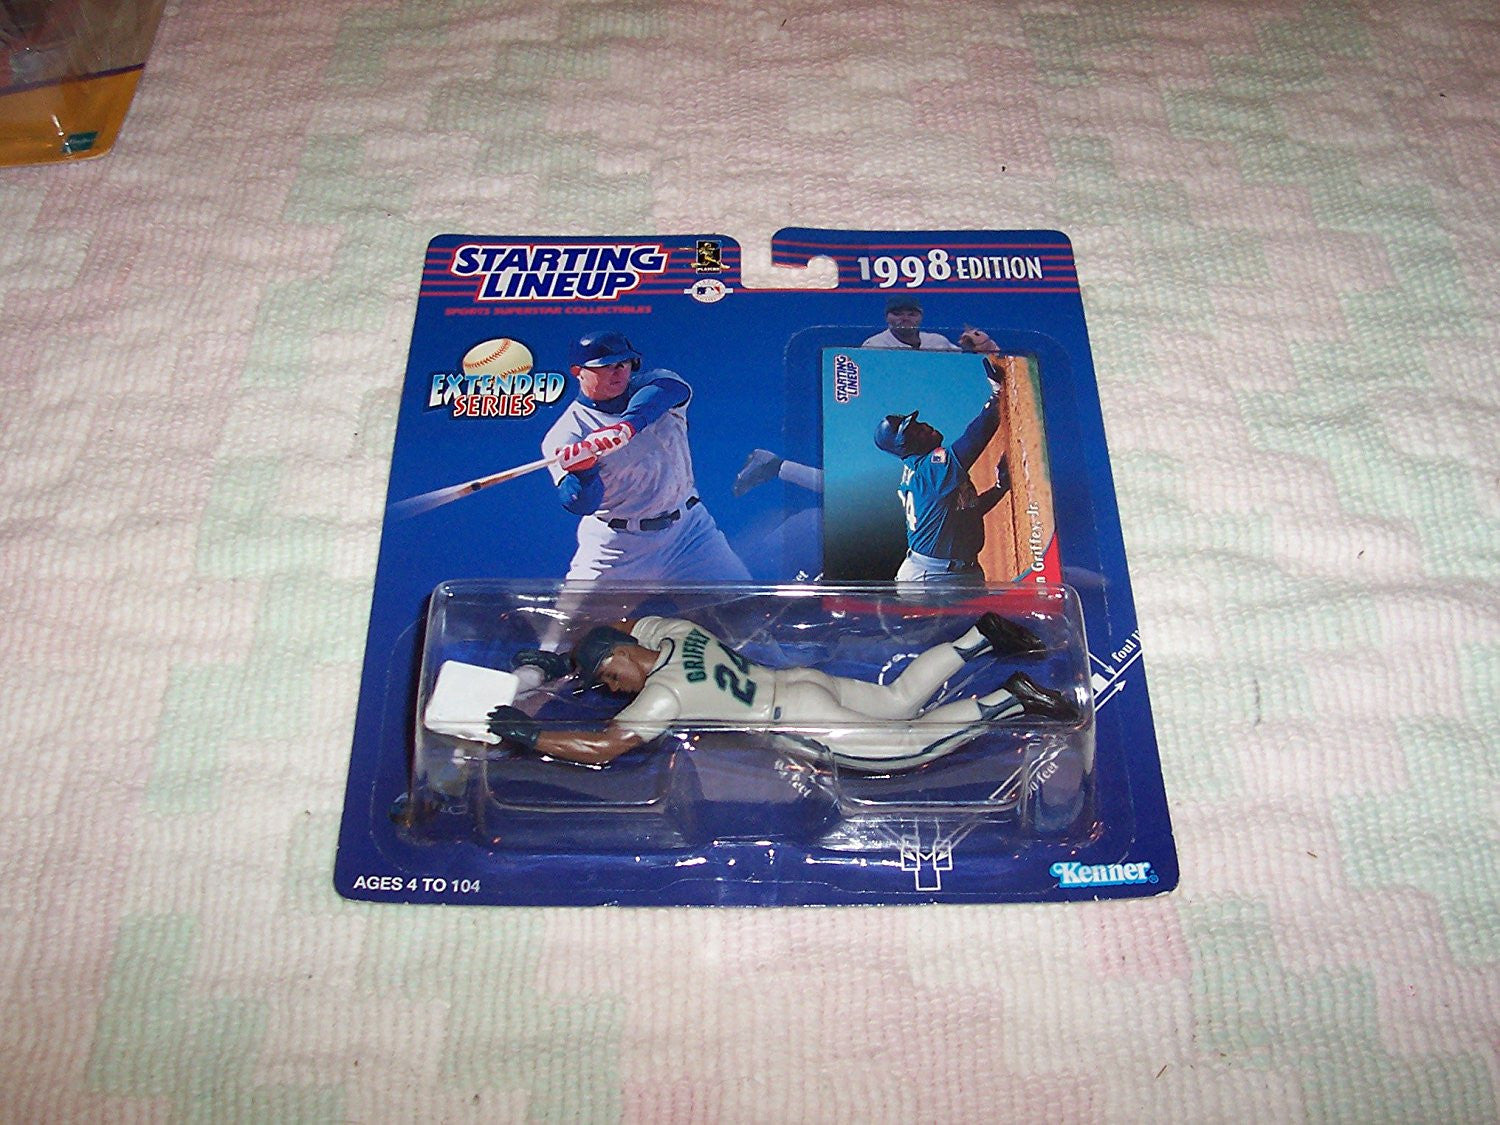 1998 MLB Starting Lineup Extended Series - Ken Griffey, Jr. - Seattle Mariners